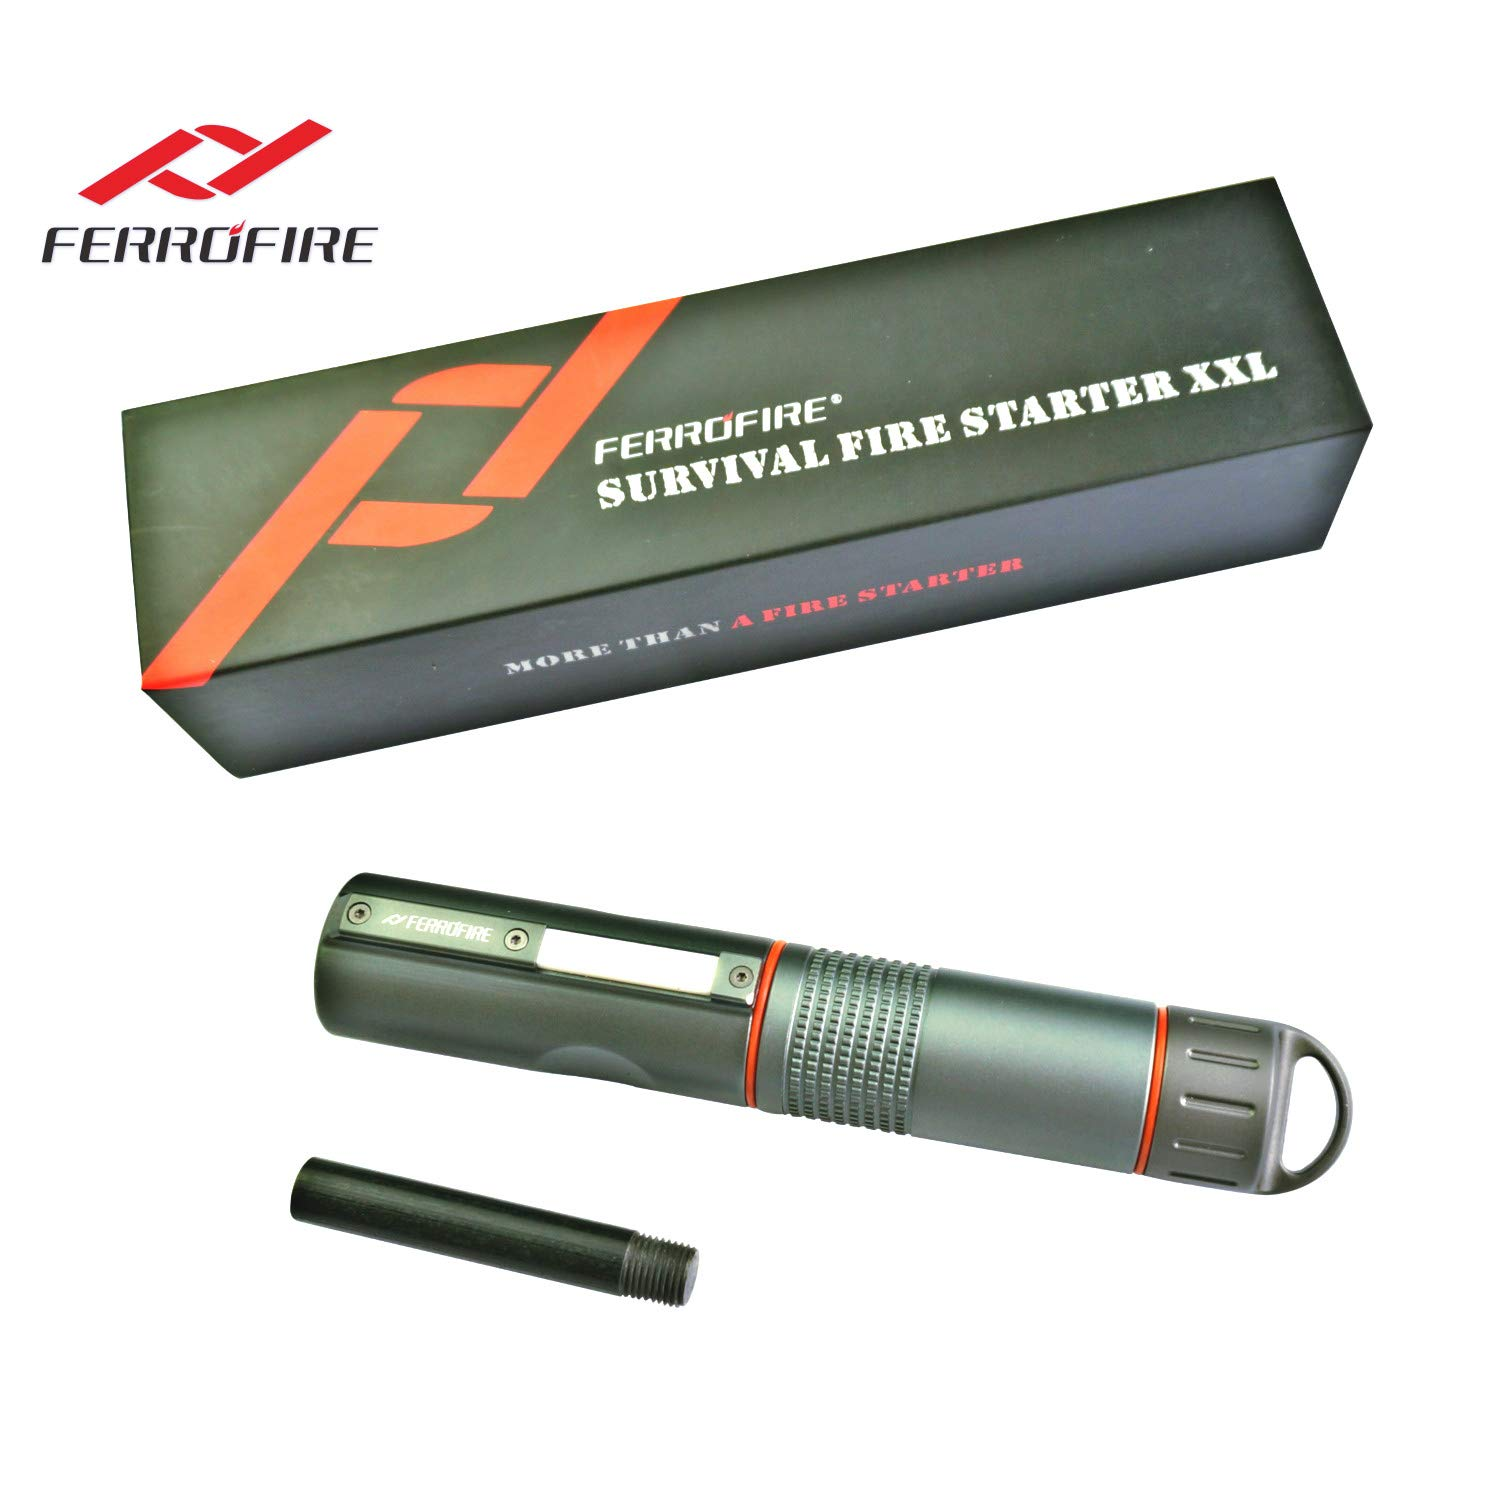 FERROFIRE Fire Starter XXL (S10E1), 2/5 inch Diameter Replaceable Ferro Rod + 1 Standby Rod, Truly for All Weathers and A Lifetime of Use with Waterproof Capsule, Built-in Striker, Compass by FERROFIRE